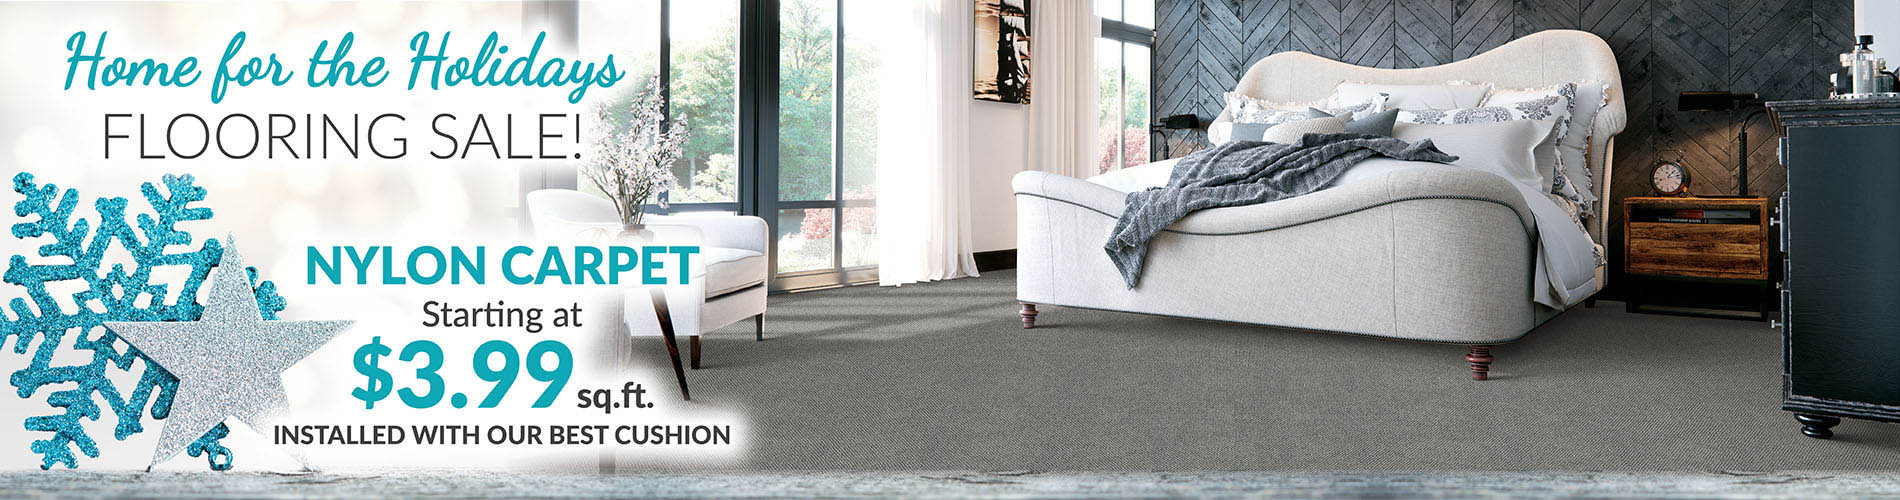 Nylon carpet installed with our best cushion starting at $3.99 sq.ft.